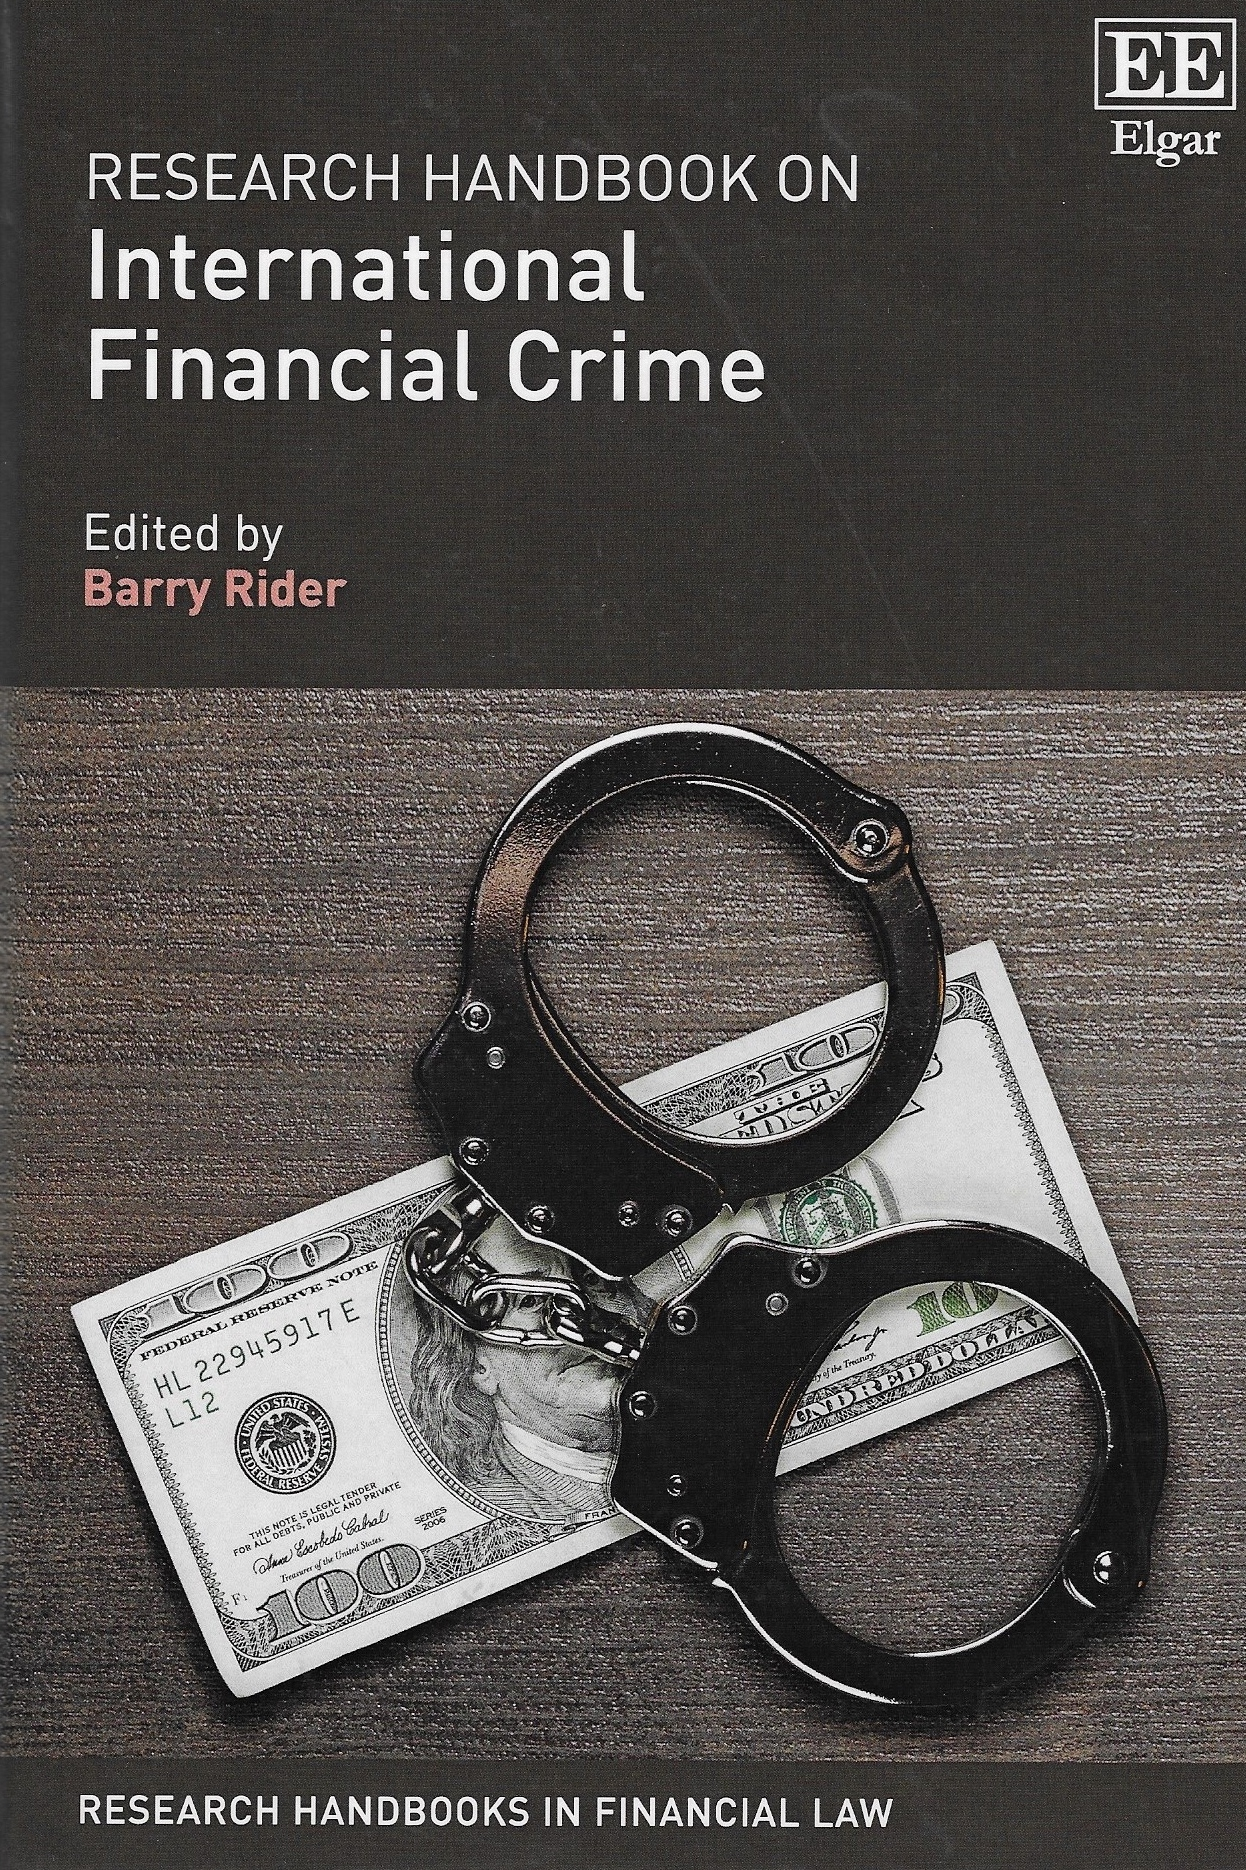 Other publications and research projects - Over the years the symposium and in particular its regional offspring have spawned numerous publications and research projects. One of the most recent being the Research Handbook on International Financial Crime by Prof Barry Rider.